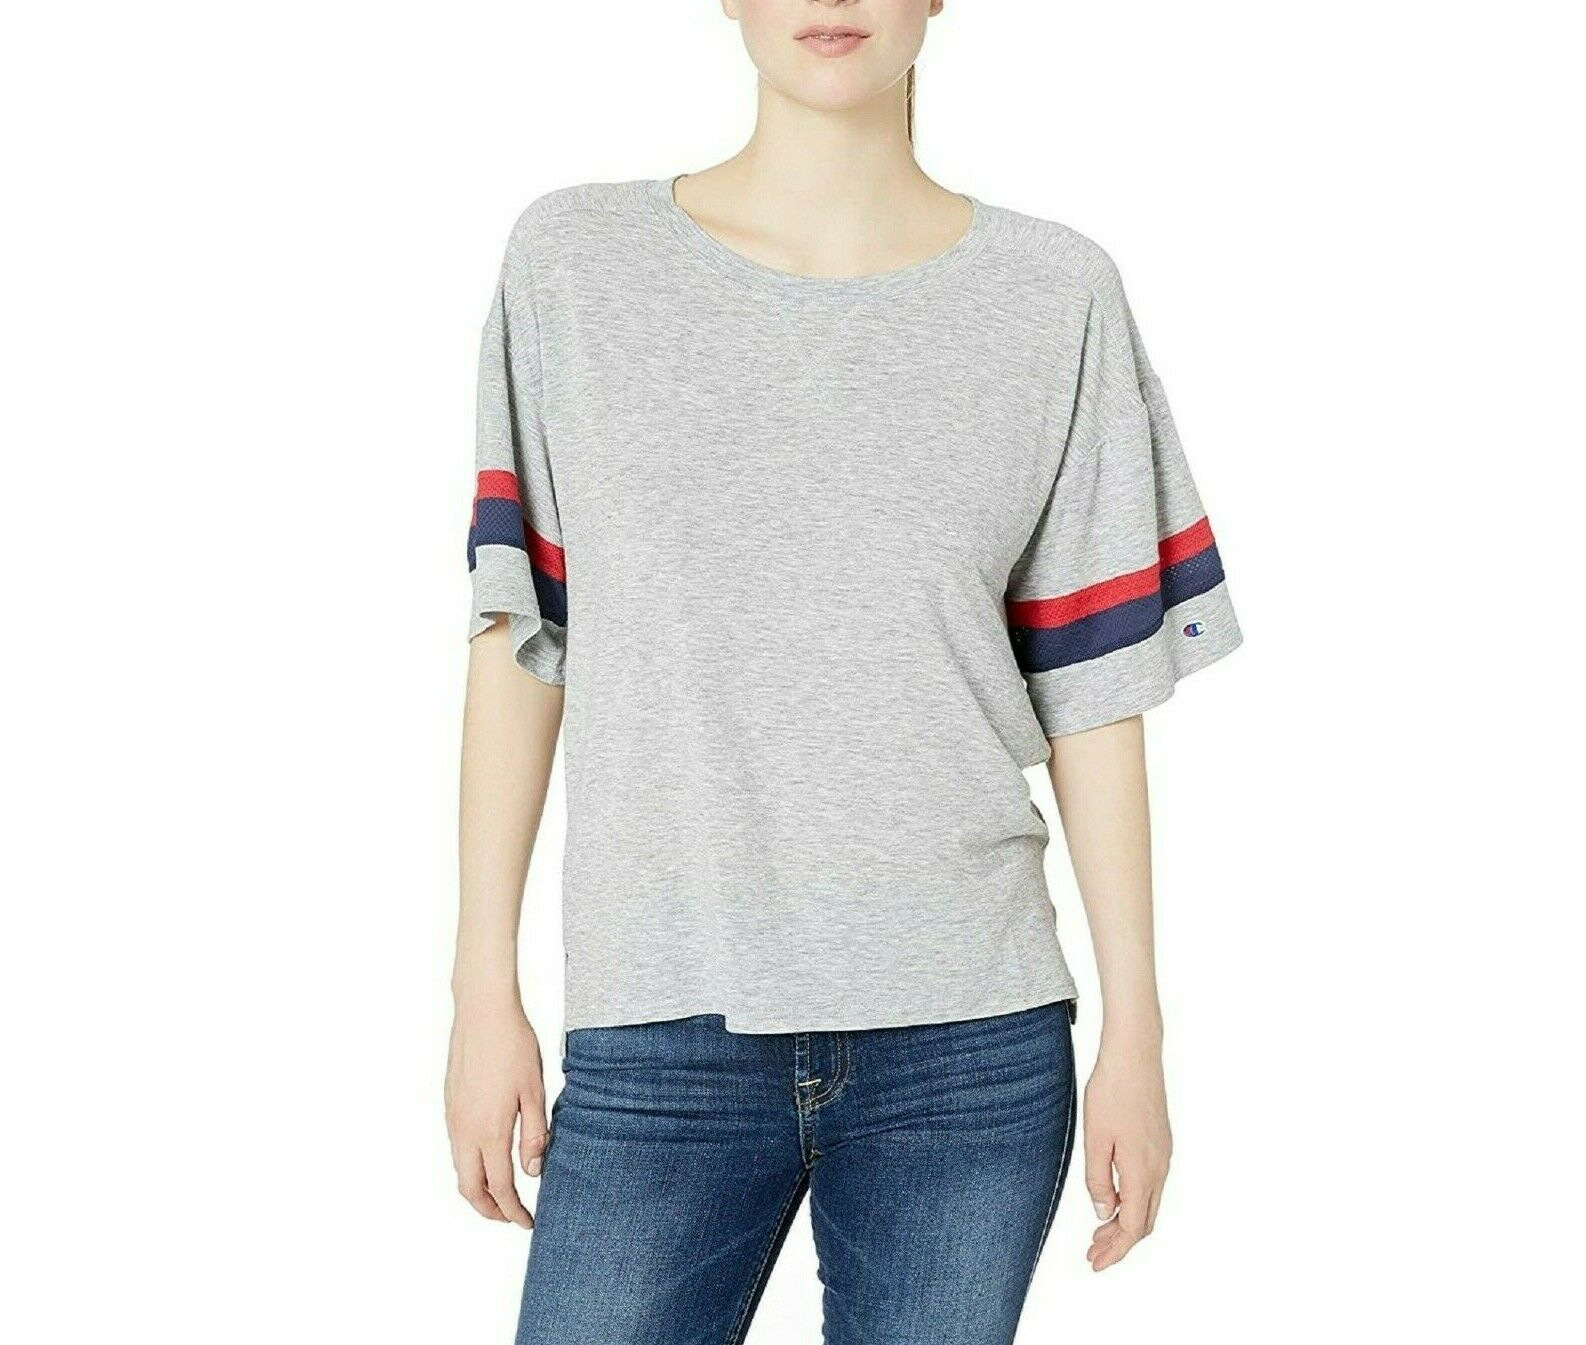 Champion Women's Gym Issue Football Tee Oxford Gray Size L